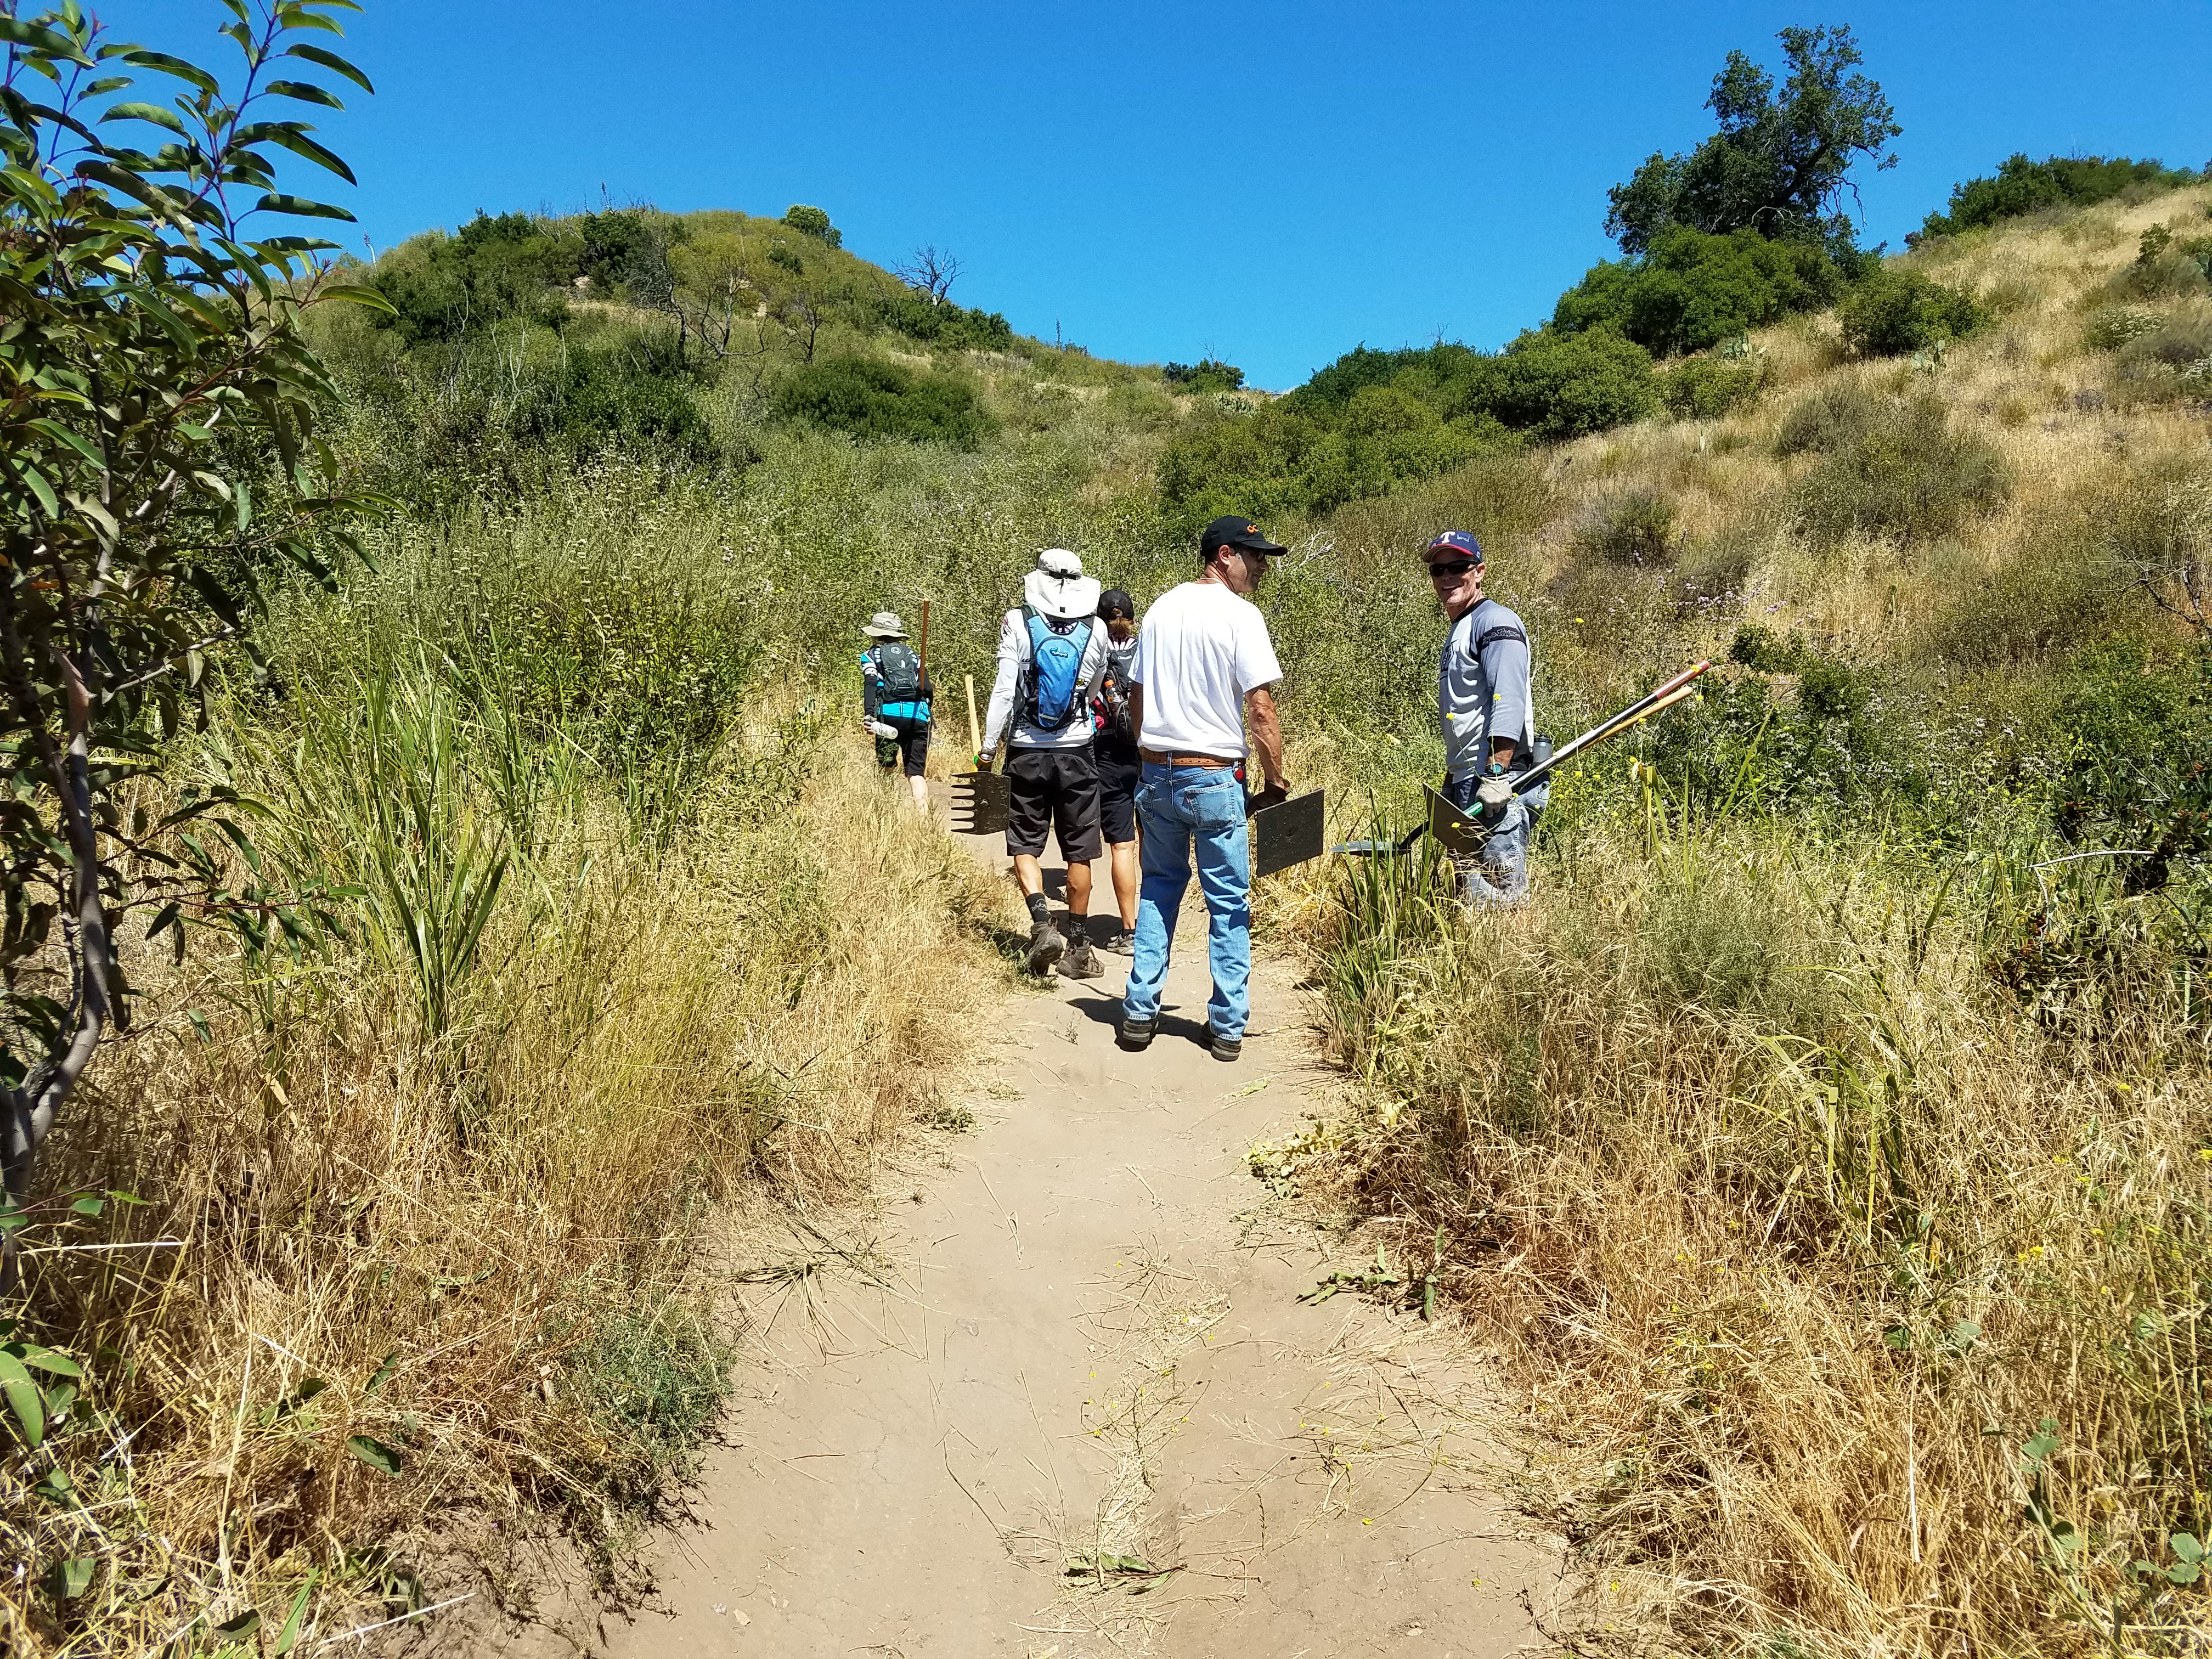 Trail Work Day in Whiting Ranch – May 22, 2017 | Report